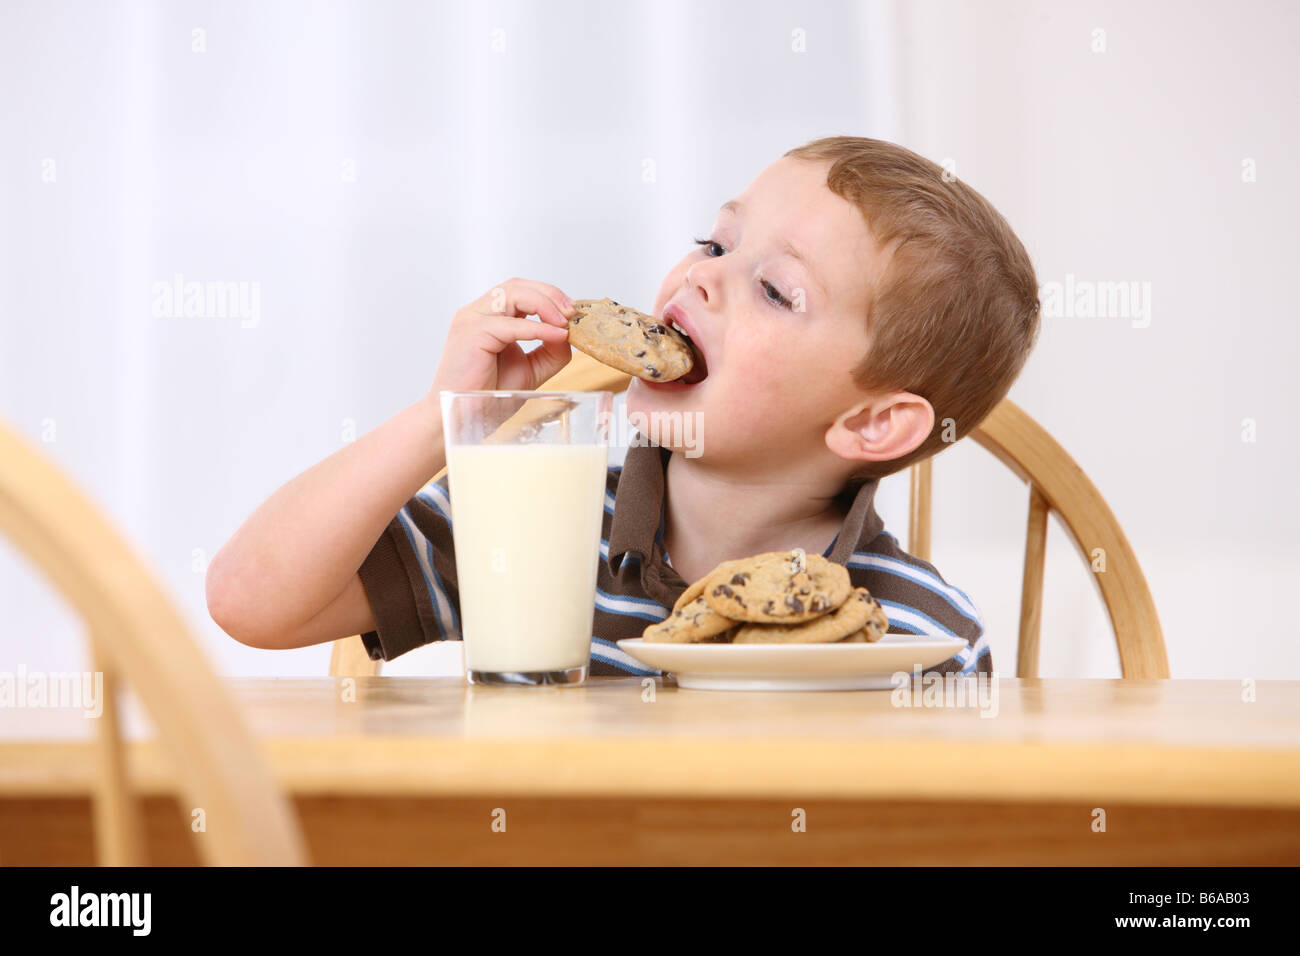 Young boy eating chocolate chip cookies and milk - Stock Image